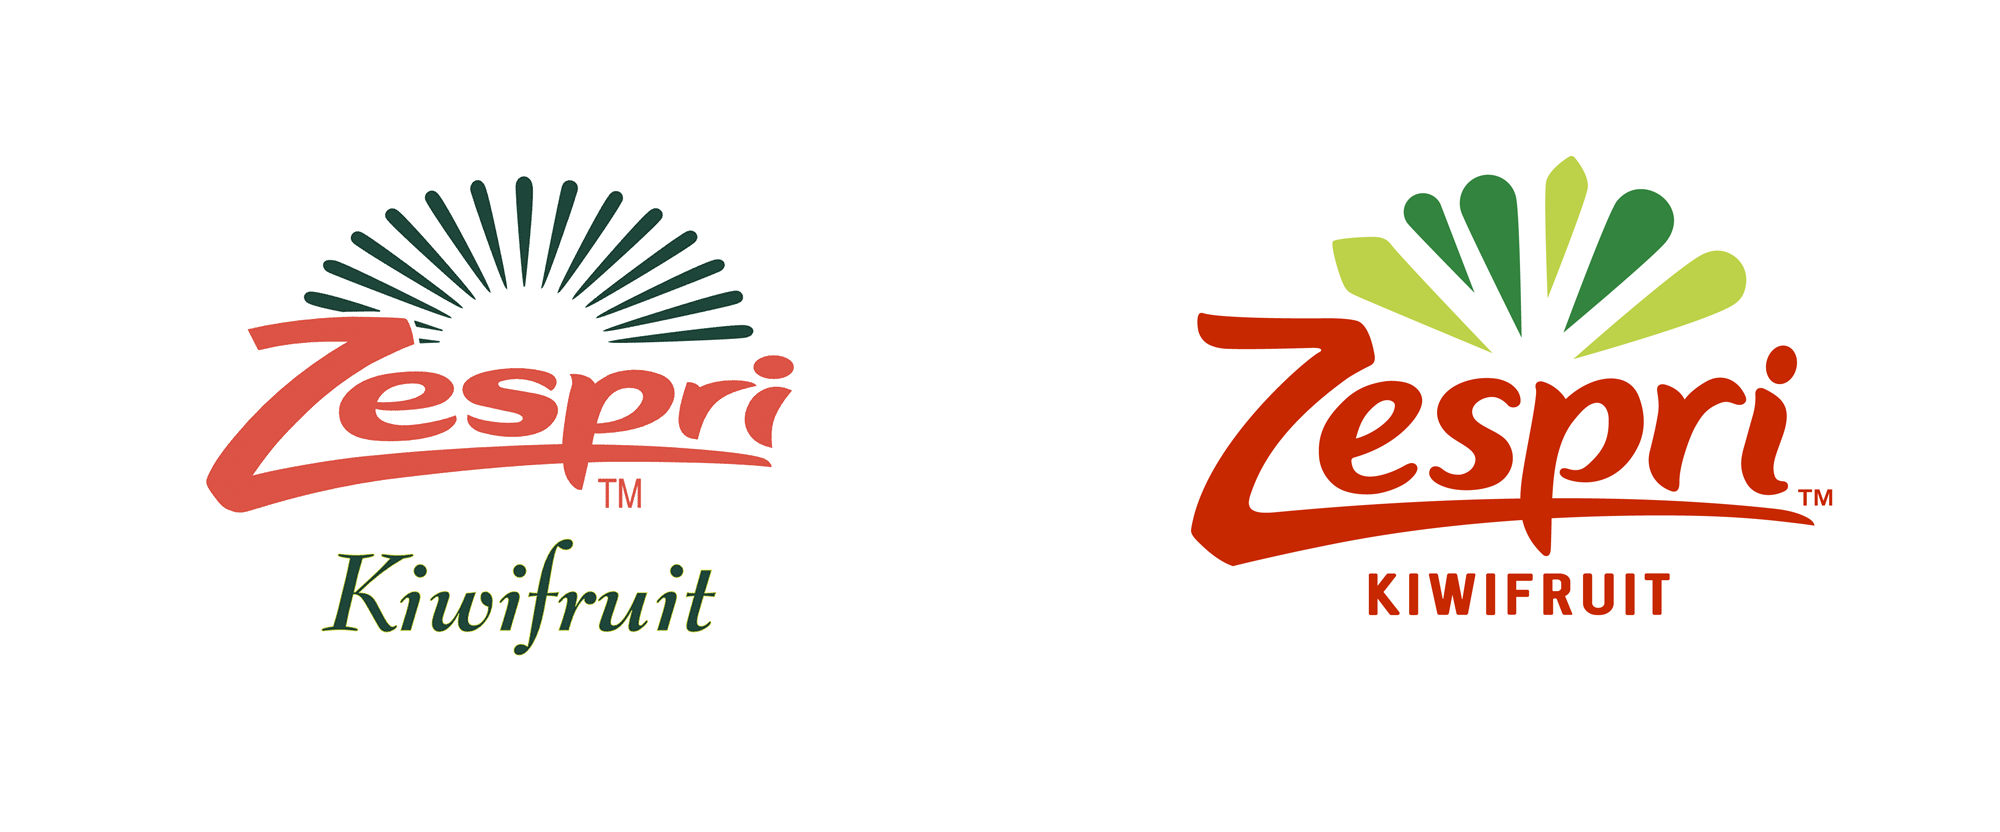 New Logo for Zespri